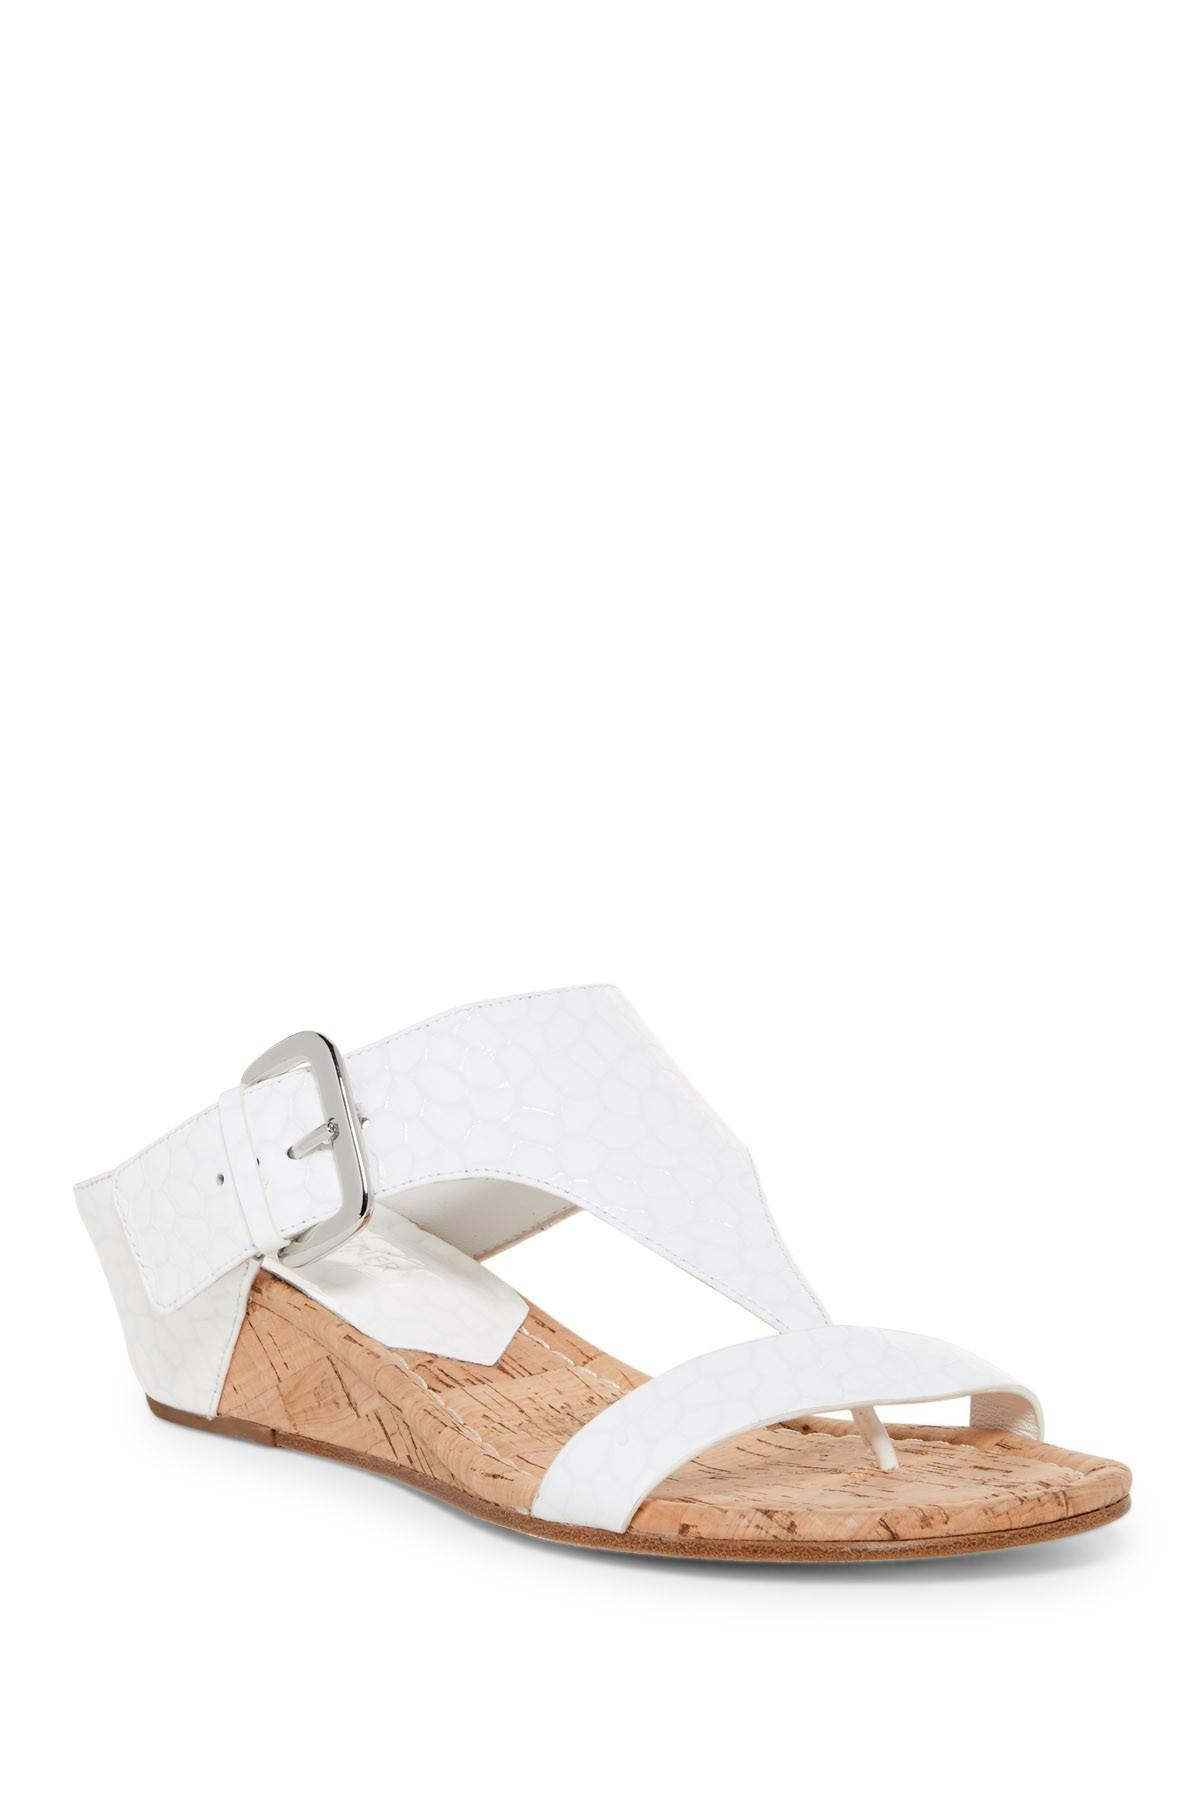 36a40e6a9811 Lyst - Donald J Pliner Doli 3 Embossed Wedge Sandal in White